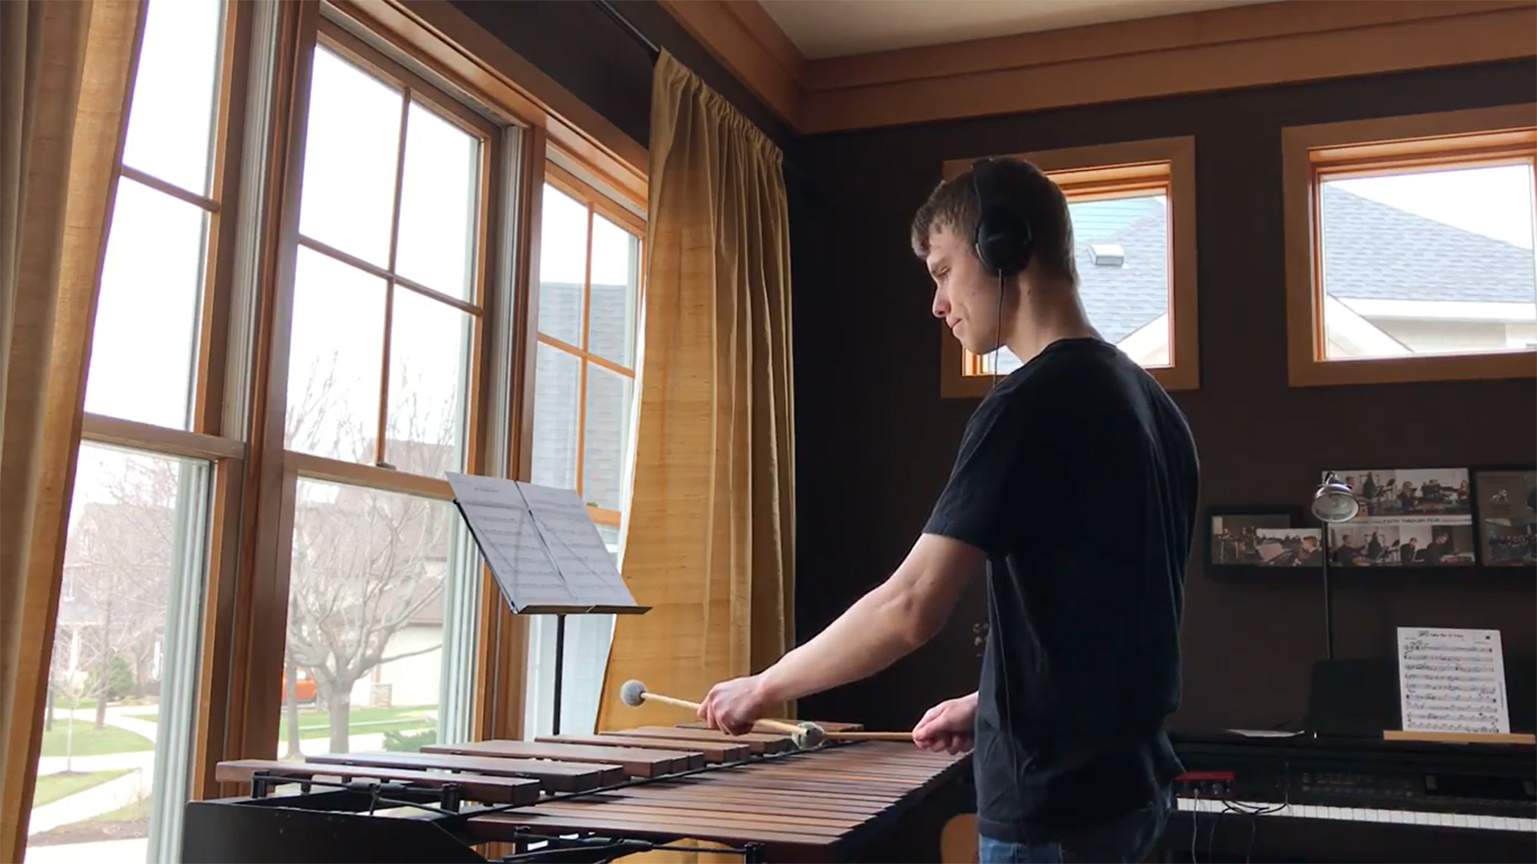 A student playing a marimba while looking at sheet music.